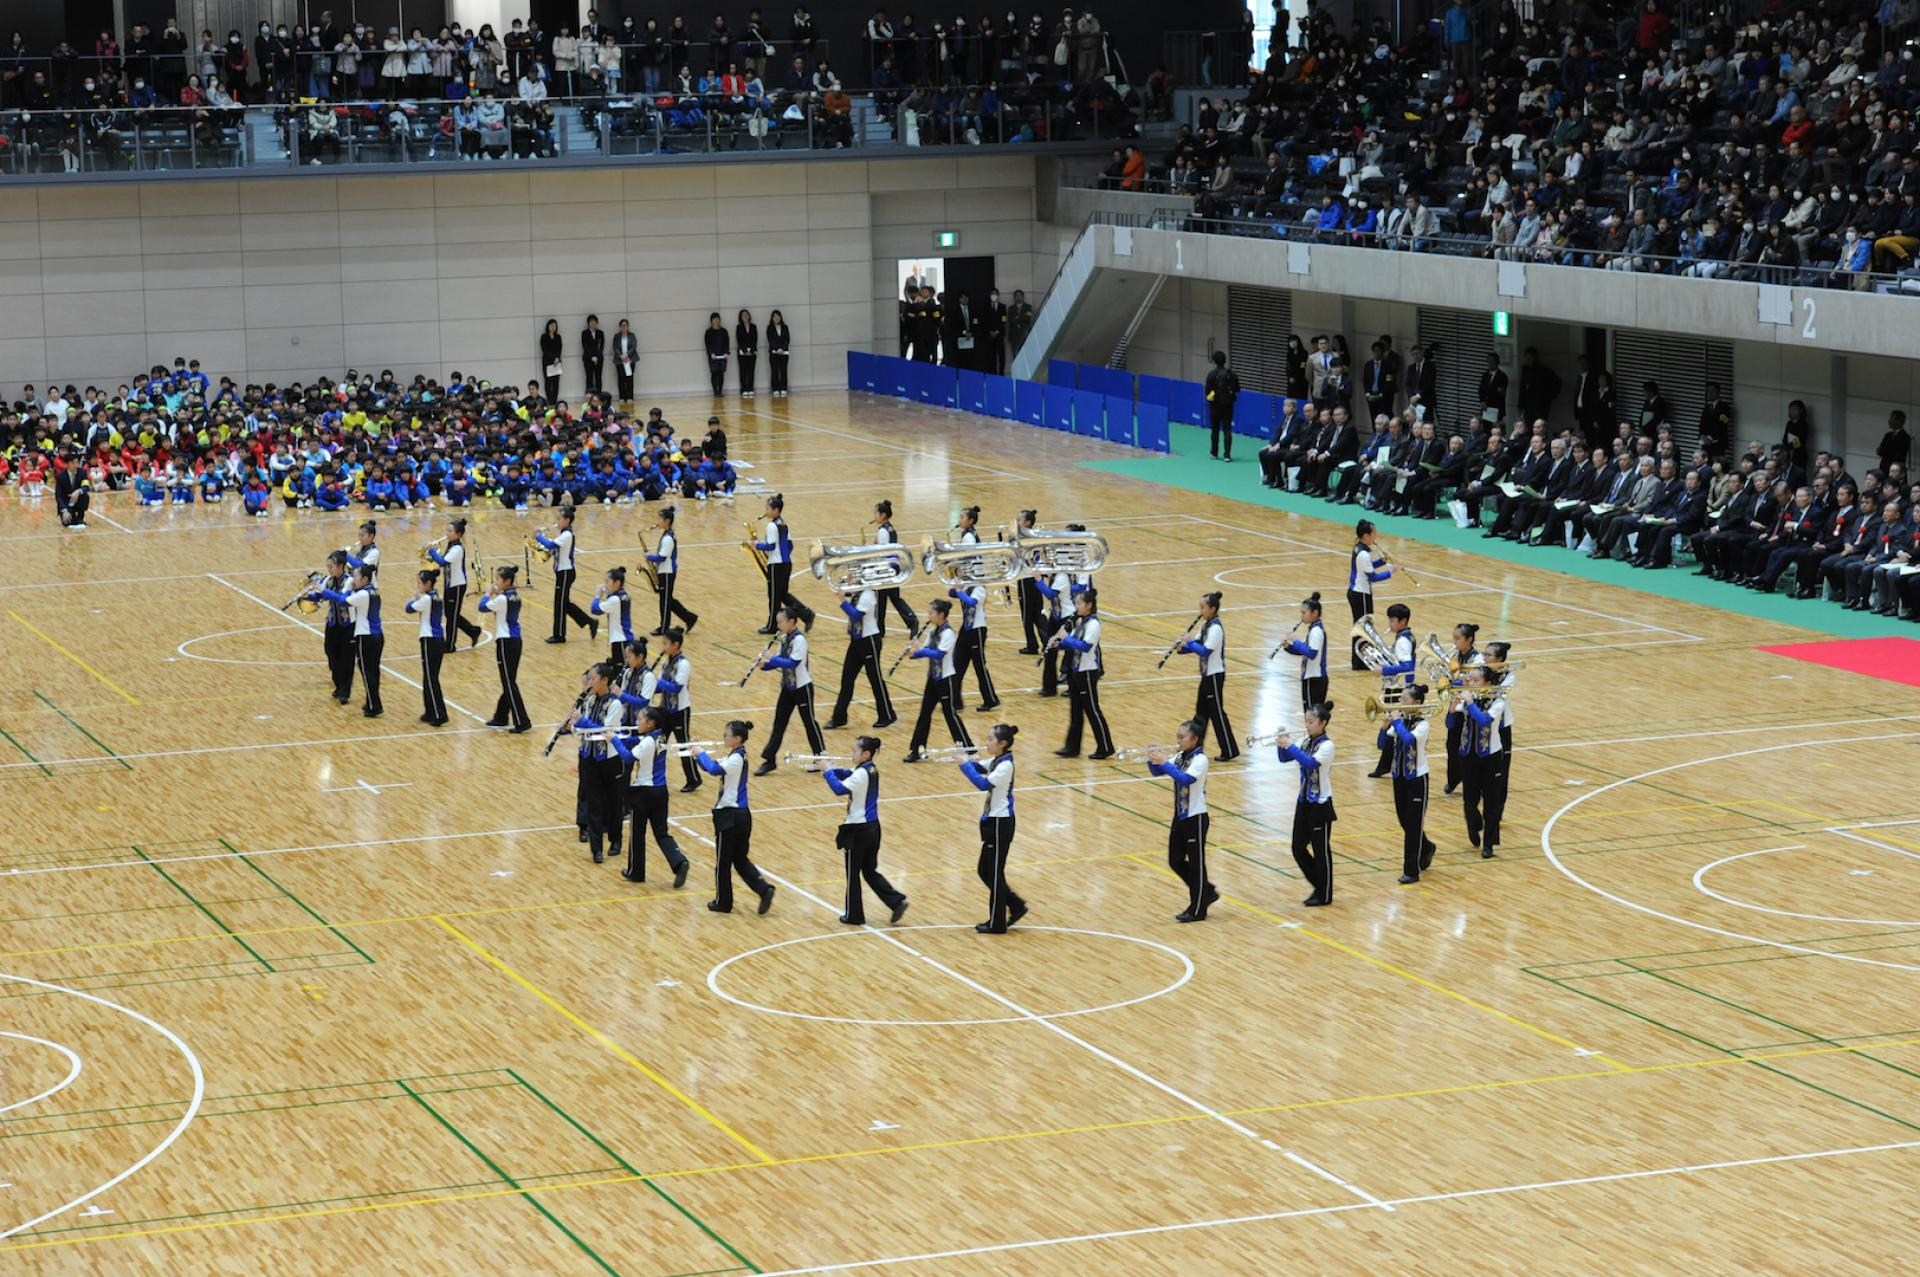 Takasaki Arena Opening Ceremony<br />Performed by<br />The Tsukasawa Junior High School Marching Band 1